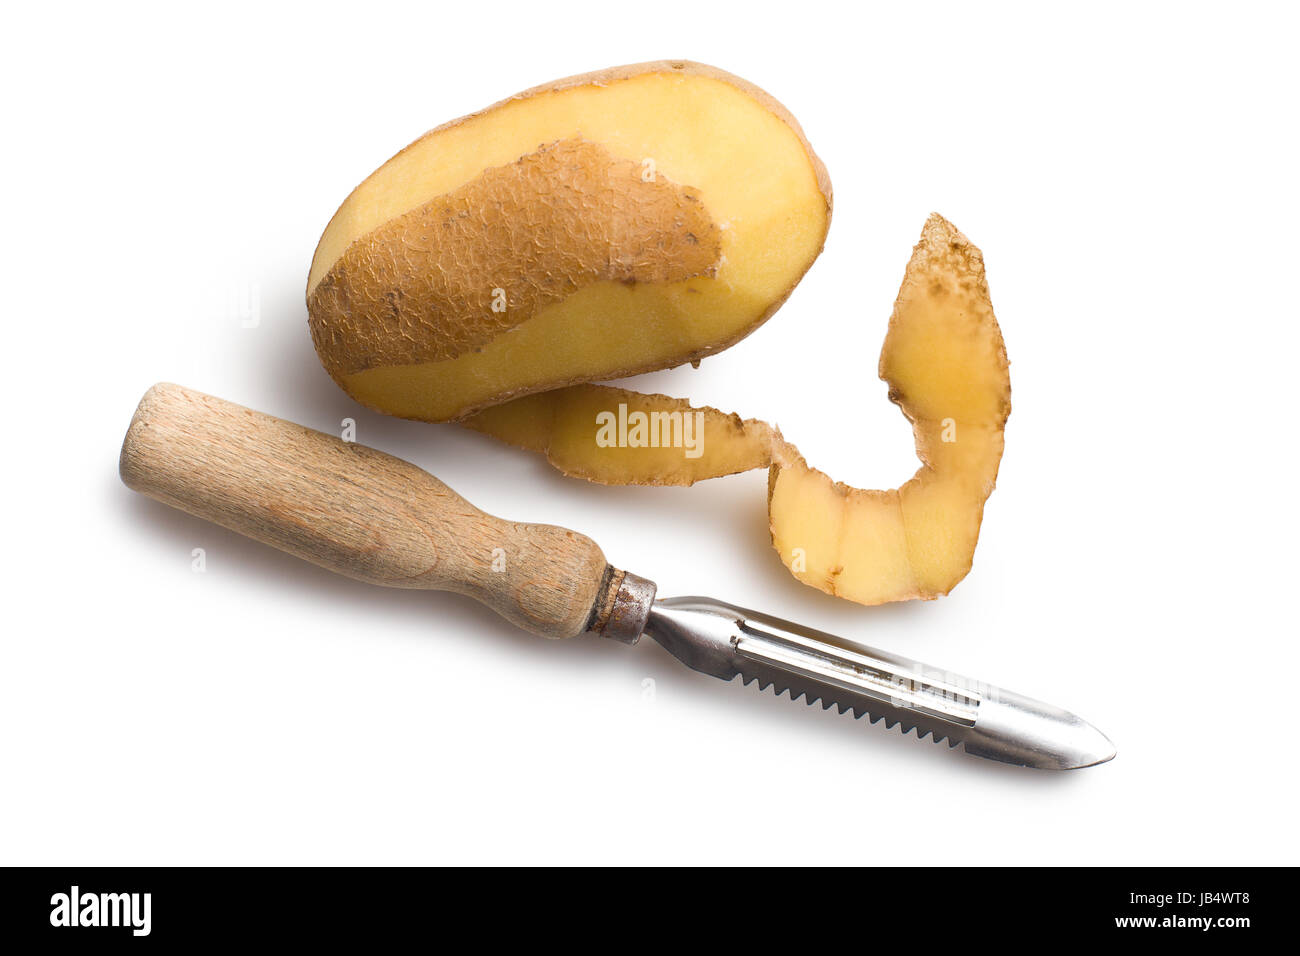 Potato Peeler Peeled Potato With Old Potato Peeler On White Background Stock